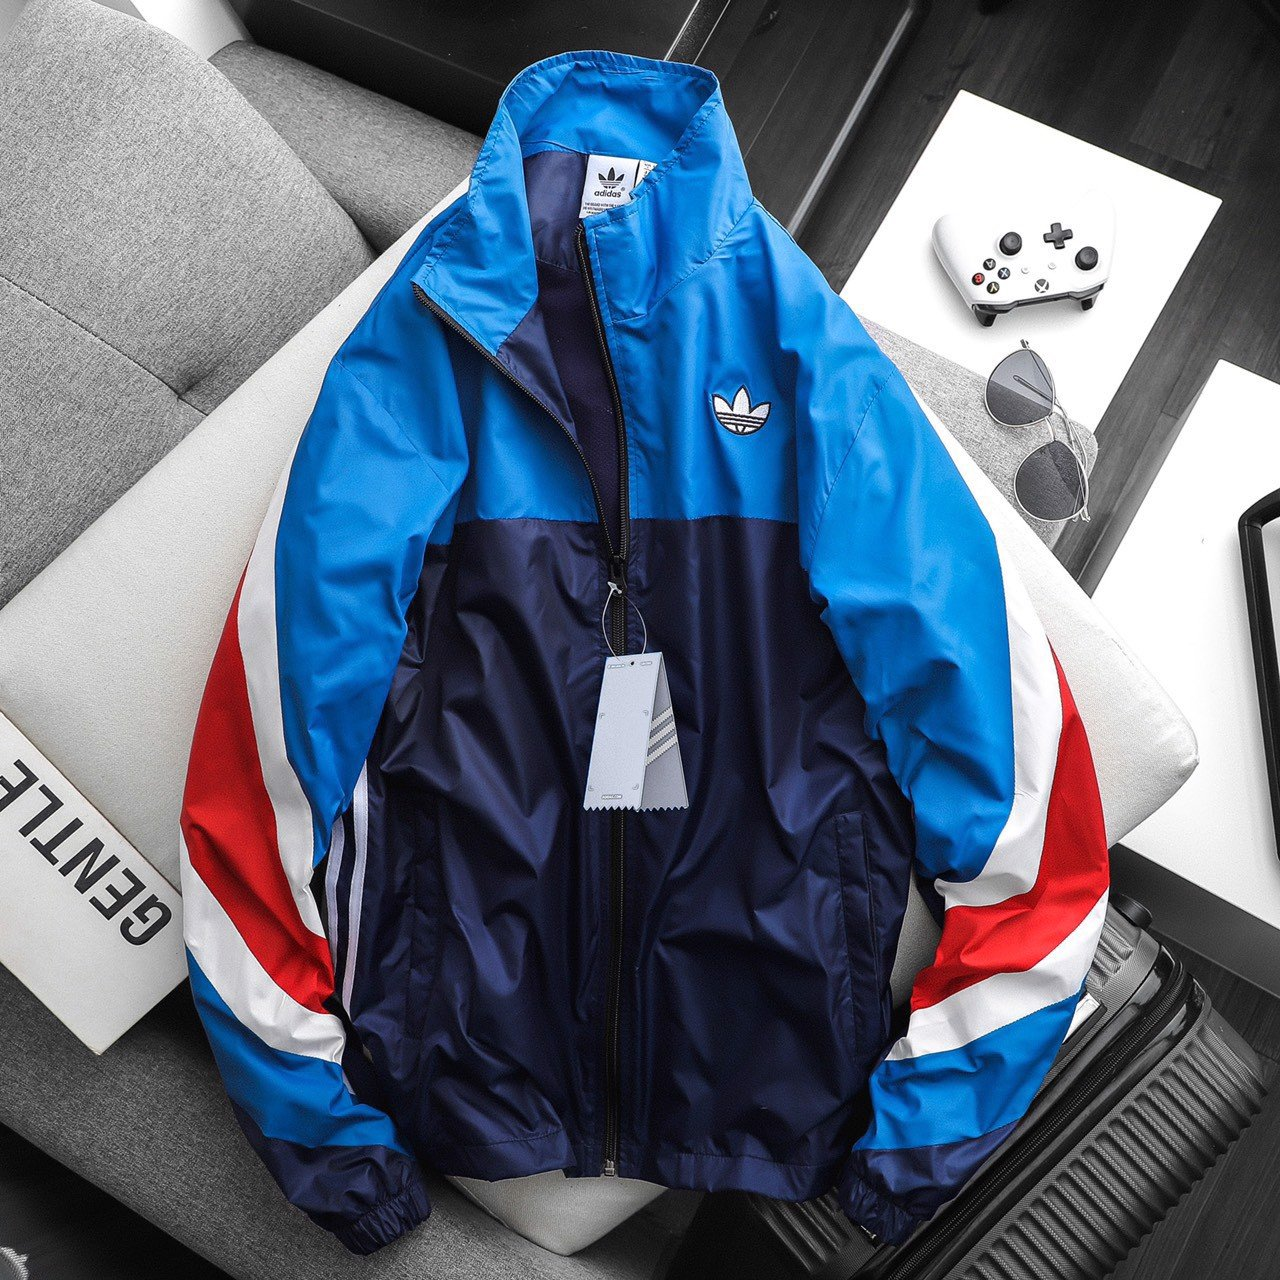 Das Color block WB Jacket